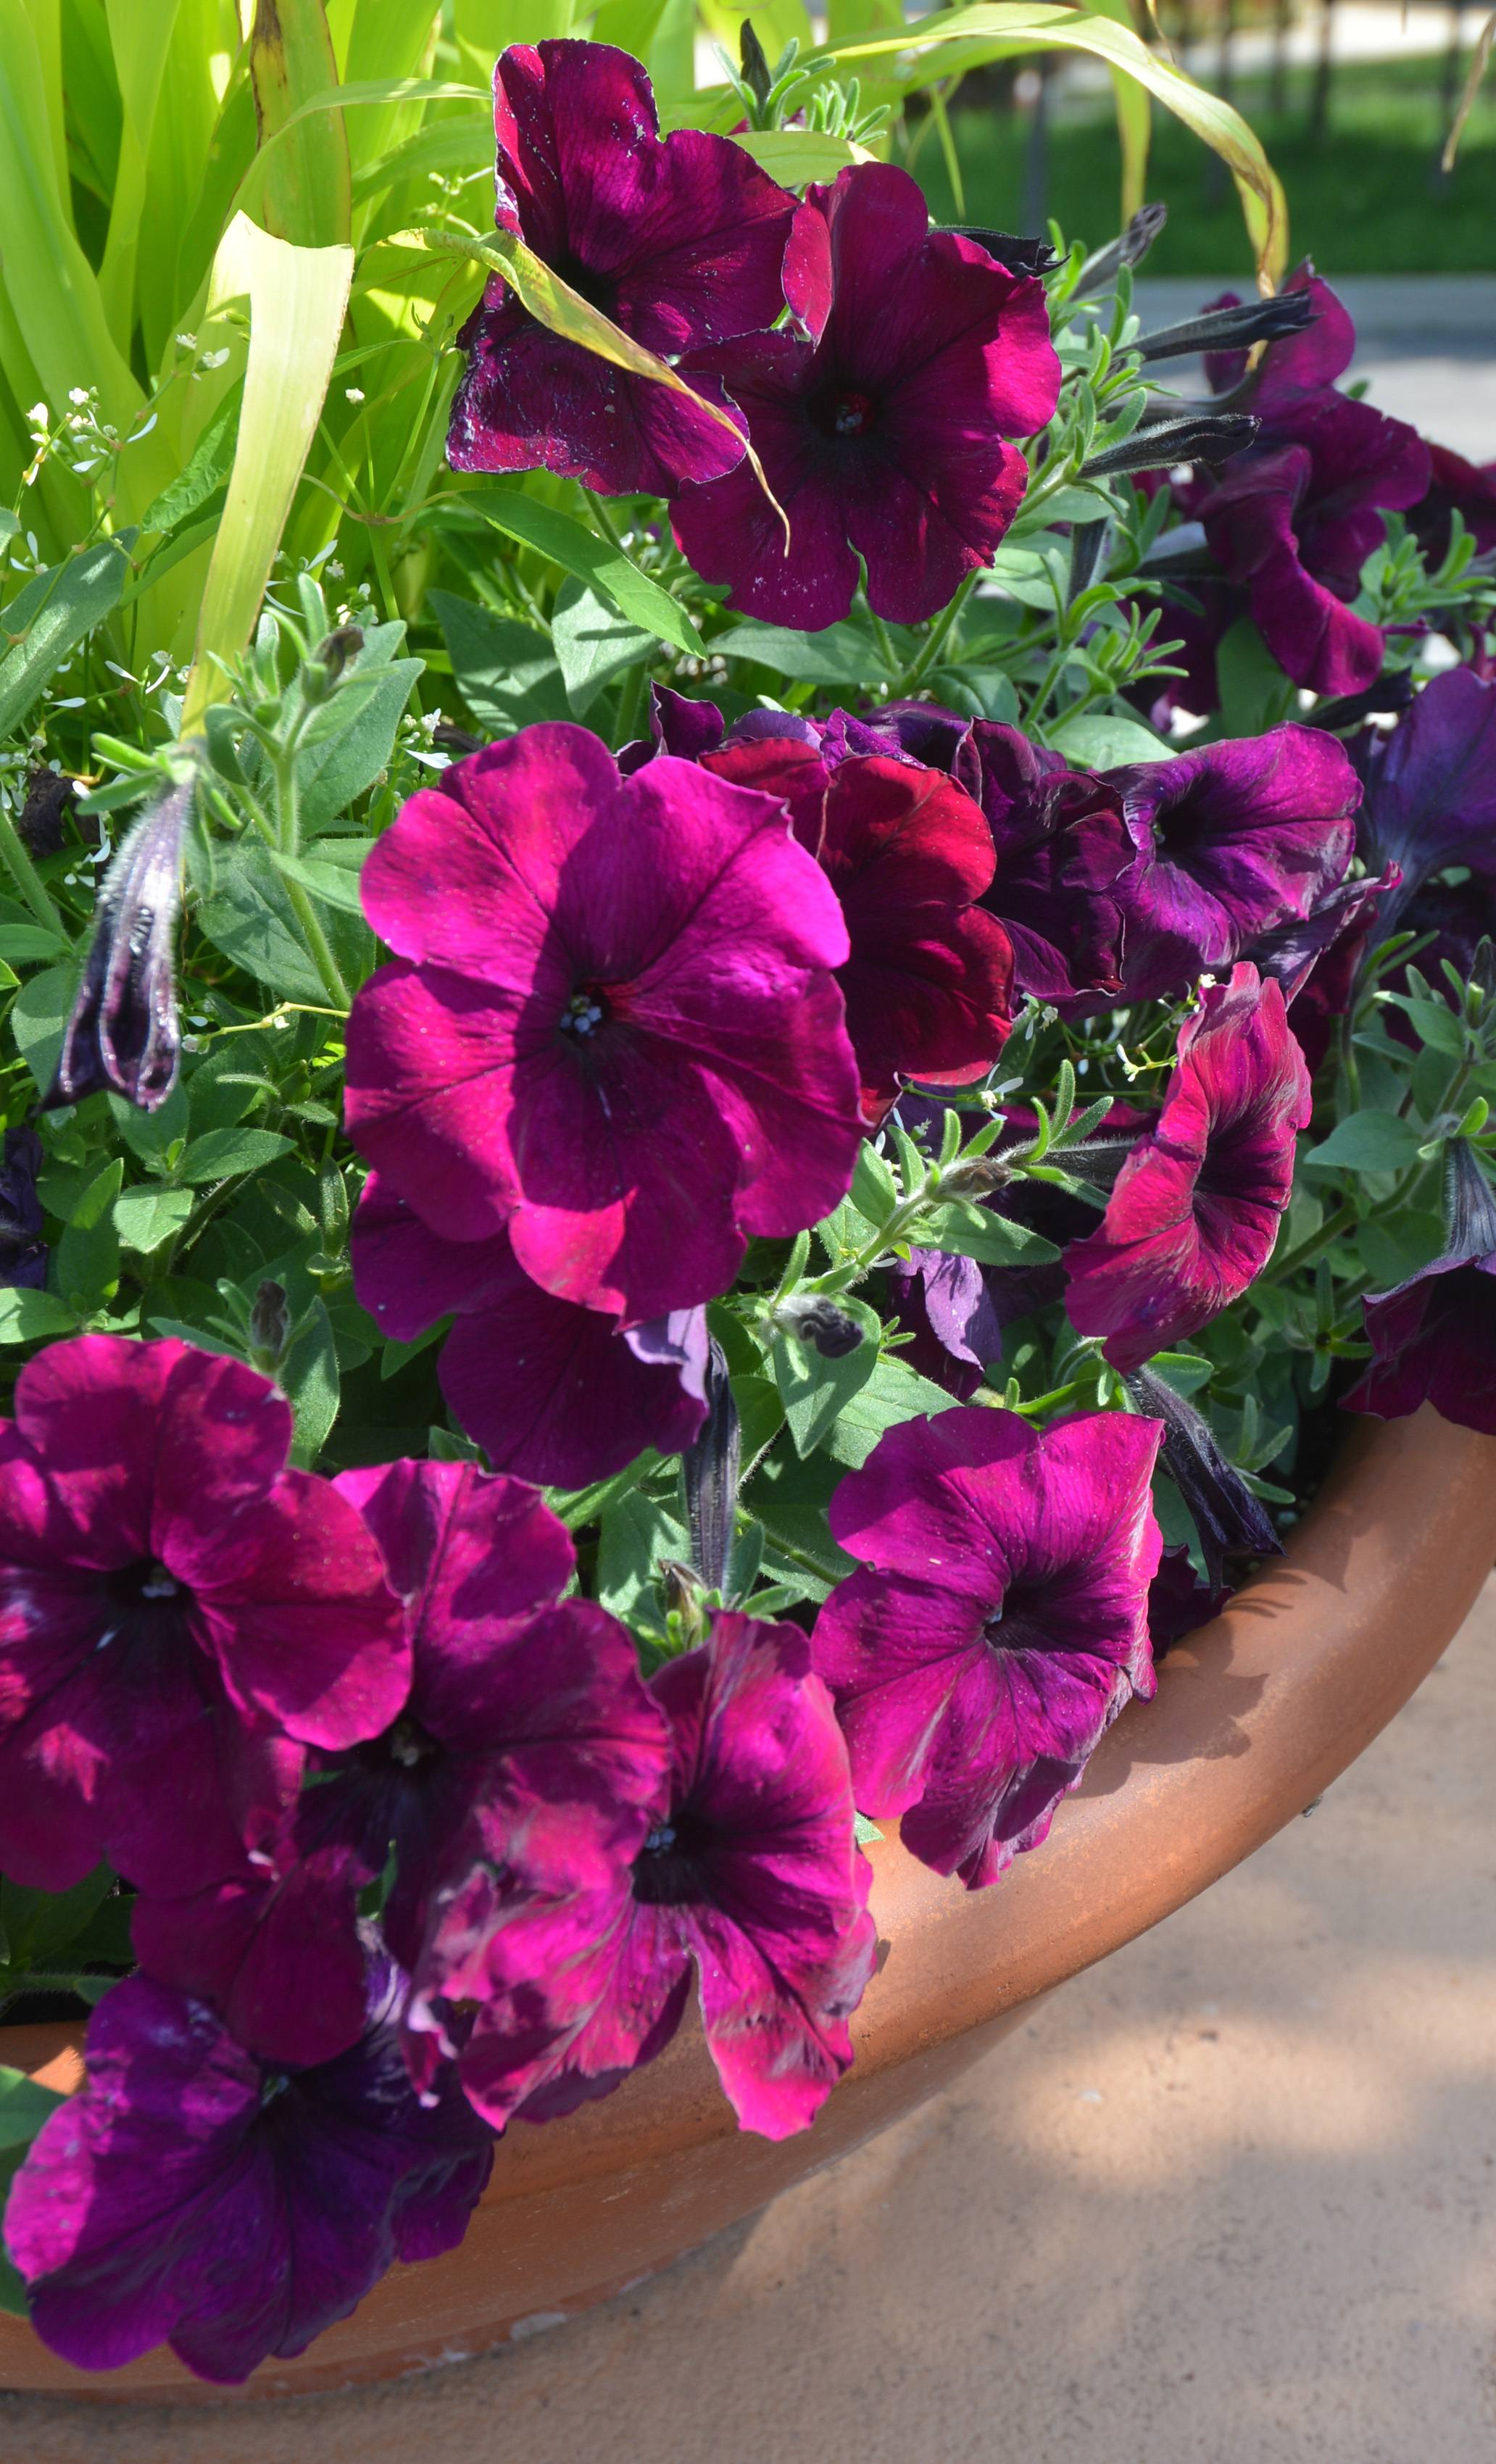 This is one of the Wave Burgundy Velour Petunias in the Garden Gateway & Plaza.